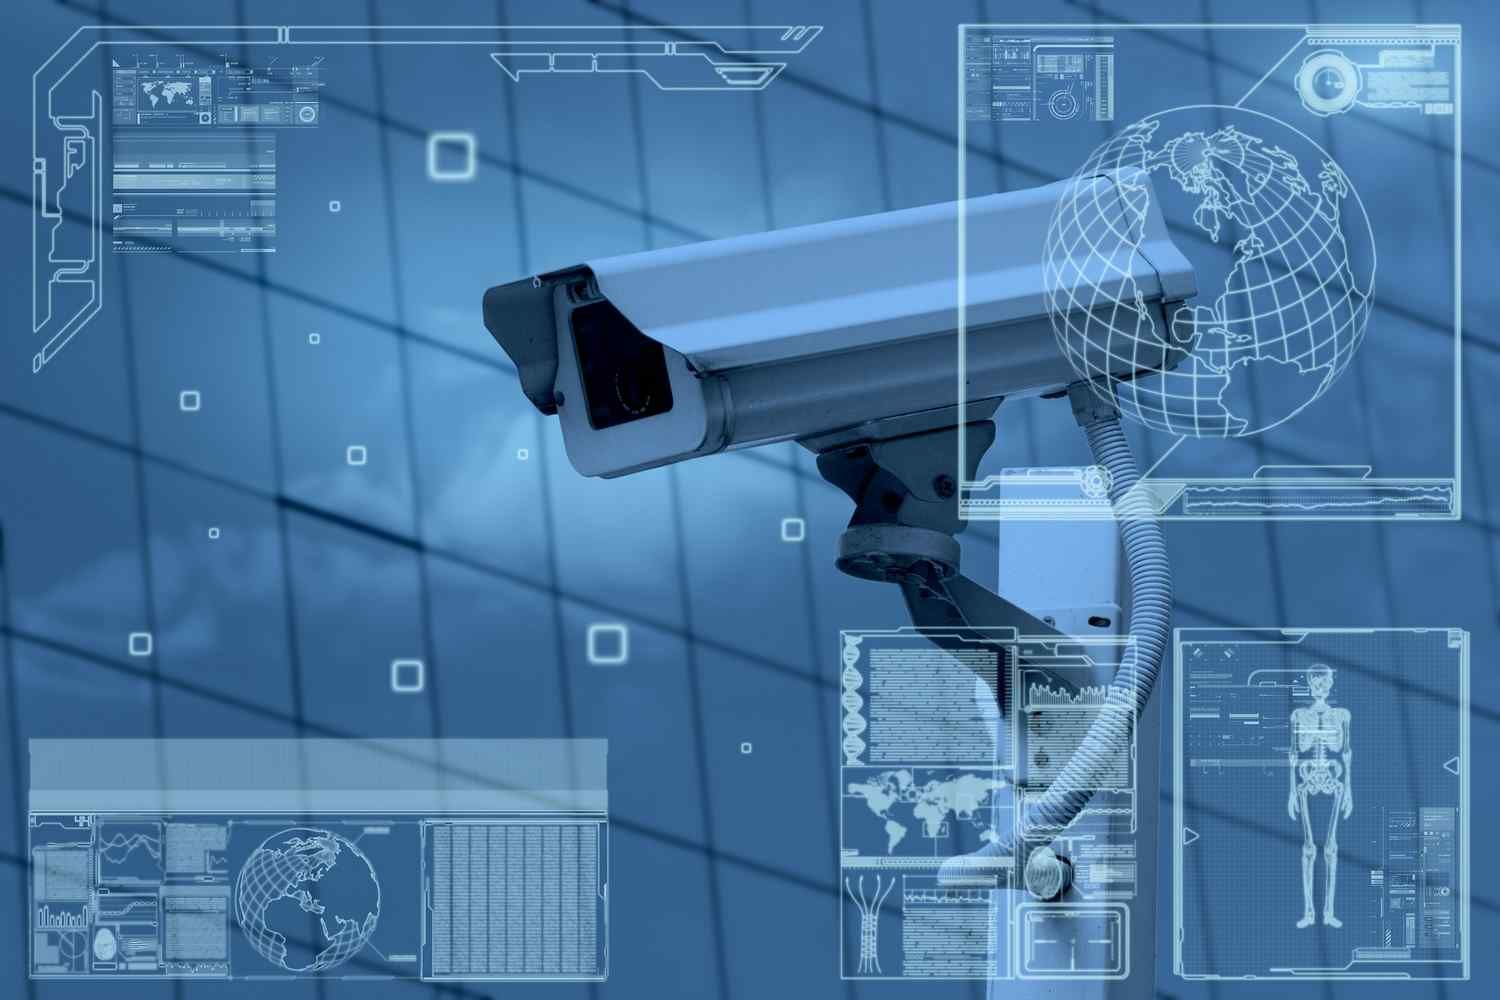 Privacy trumps the expedience of police technology tools